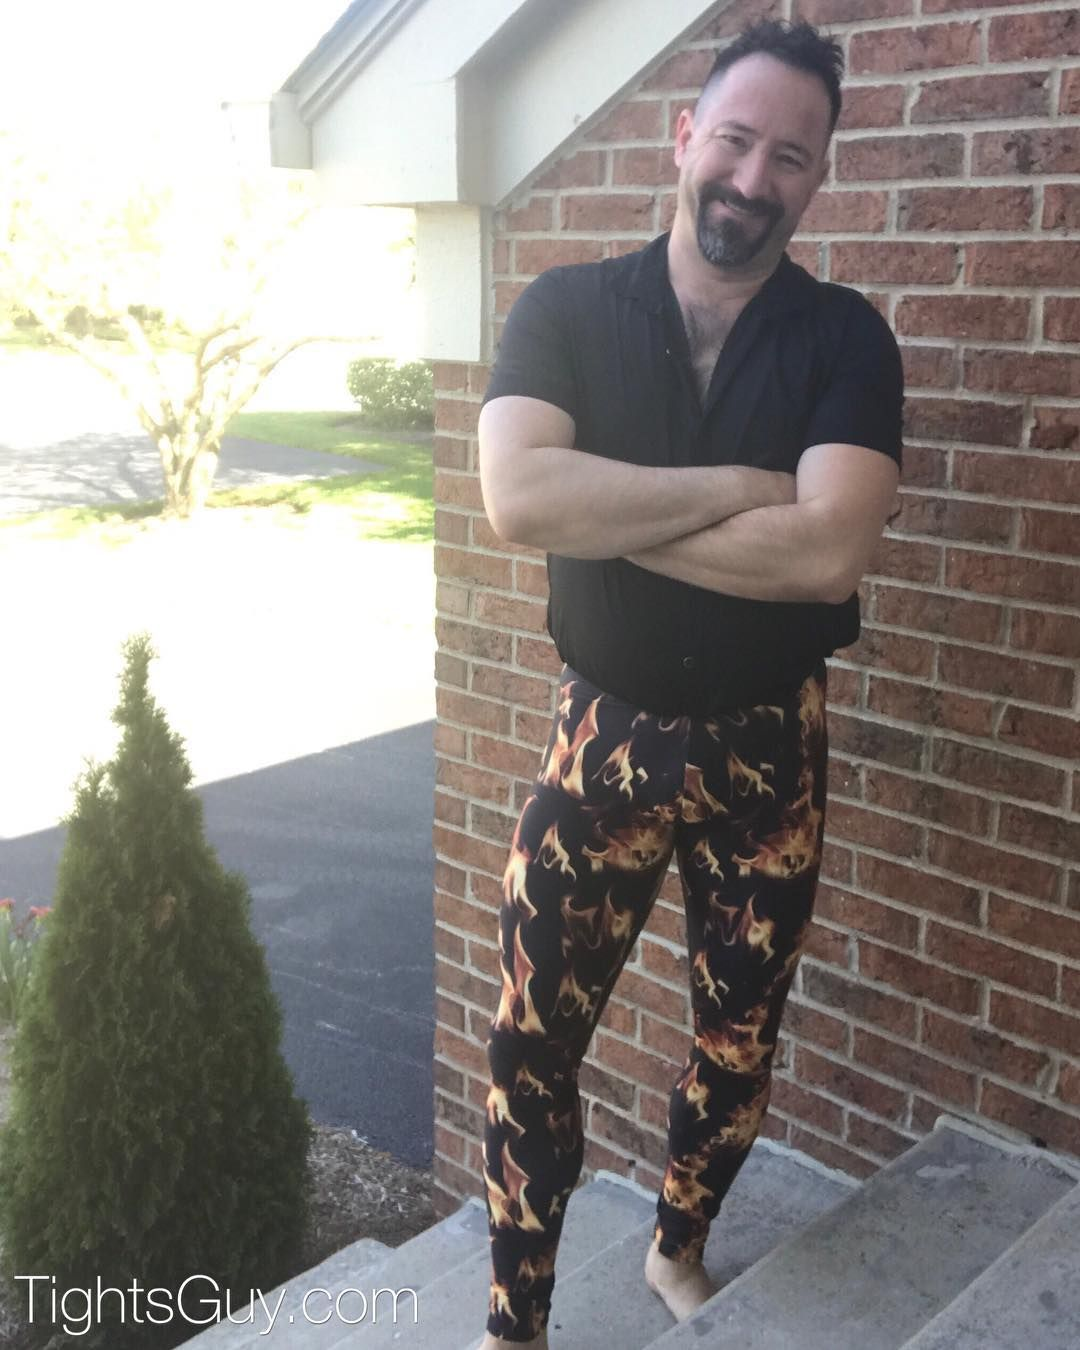 Tights of the day are Fire!  Check them out http://tightsguy.com. #tightsguy #IAmATightsGuy . . . #tightslife #tightslover #tightsstyle #tightsformen #tightsoftheday #meggings #meggingslife #meggingsfashion #meggingsmovement #leggingslife #leggingslove #leggingsformen #leggingsoftheday #firetights